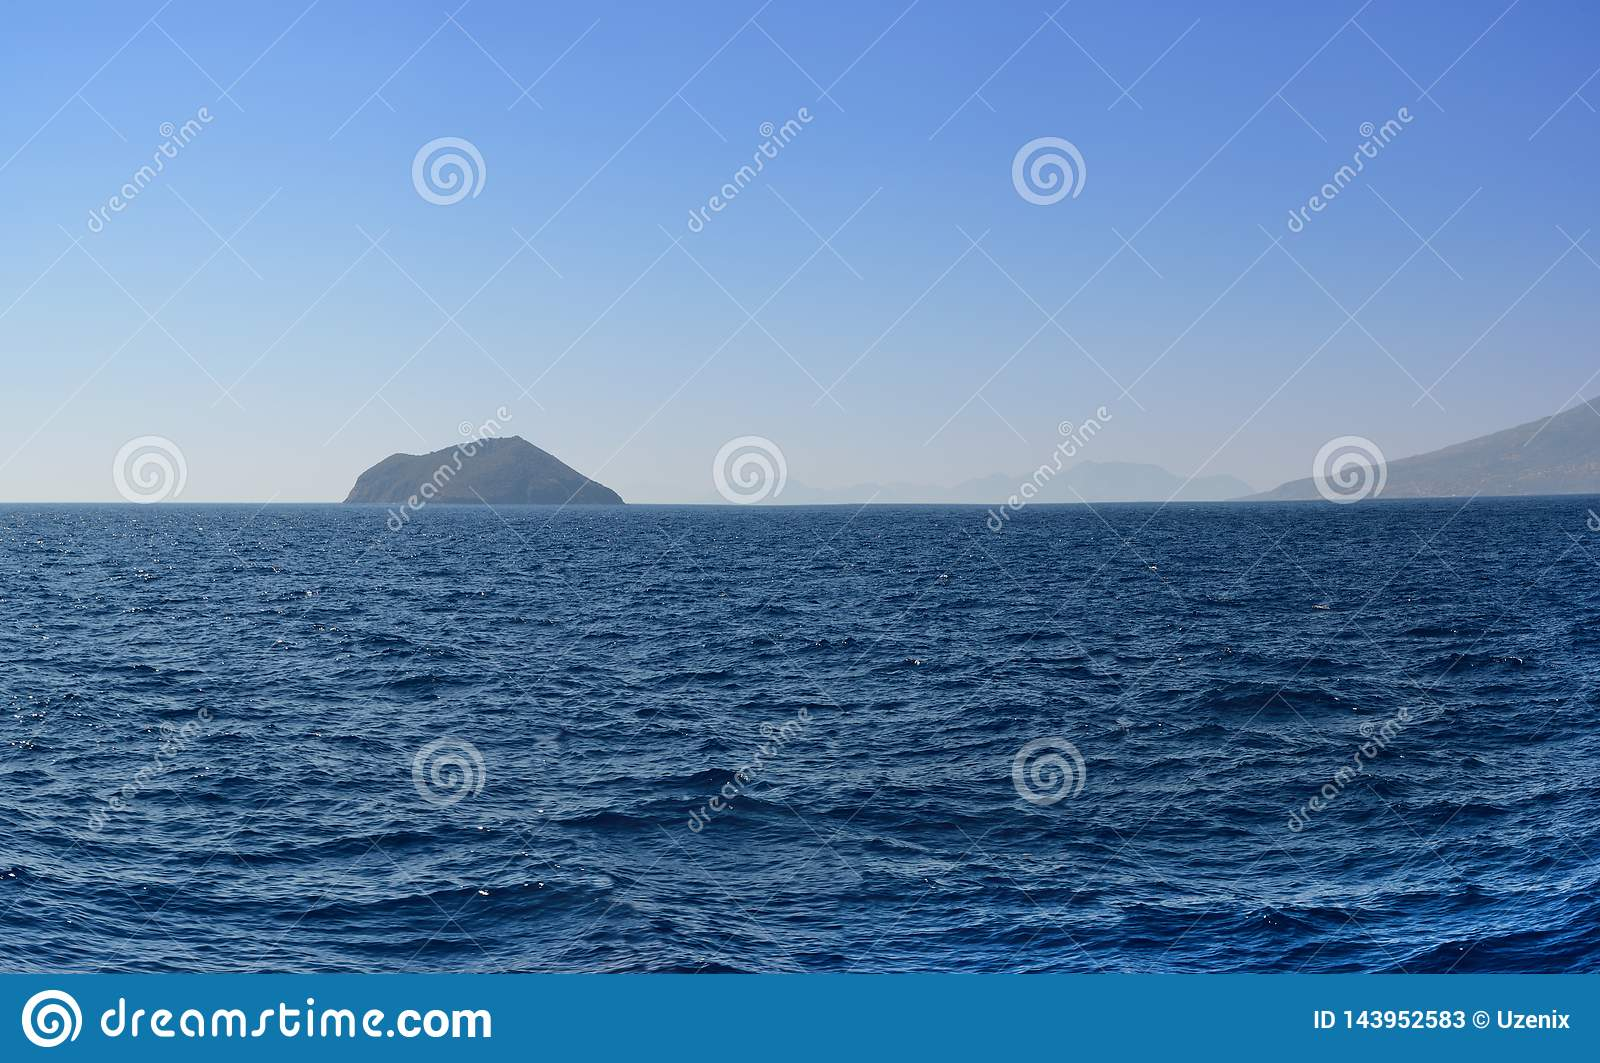 Panorama of the Aegean Sea overlooking the next islands and mountains in the summer evening after a decline. it is sewed from four